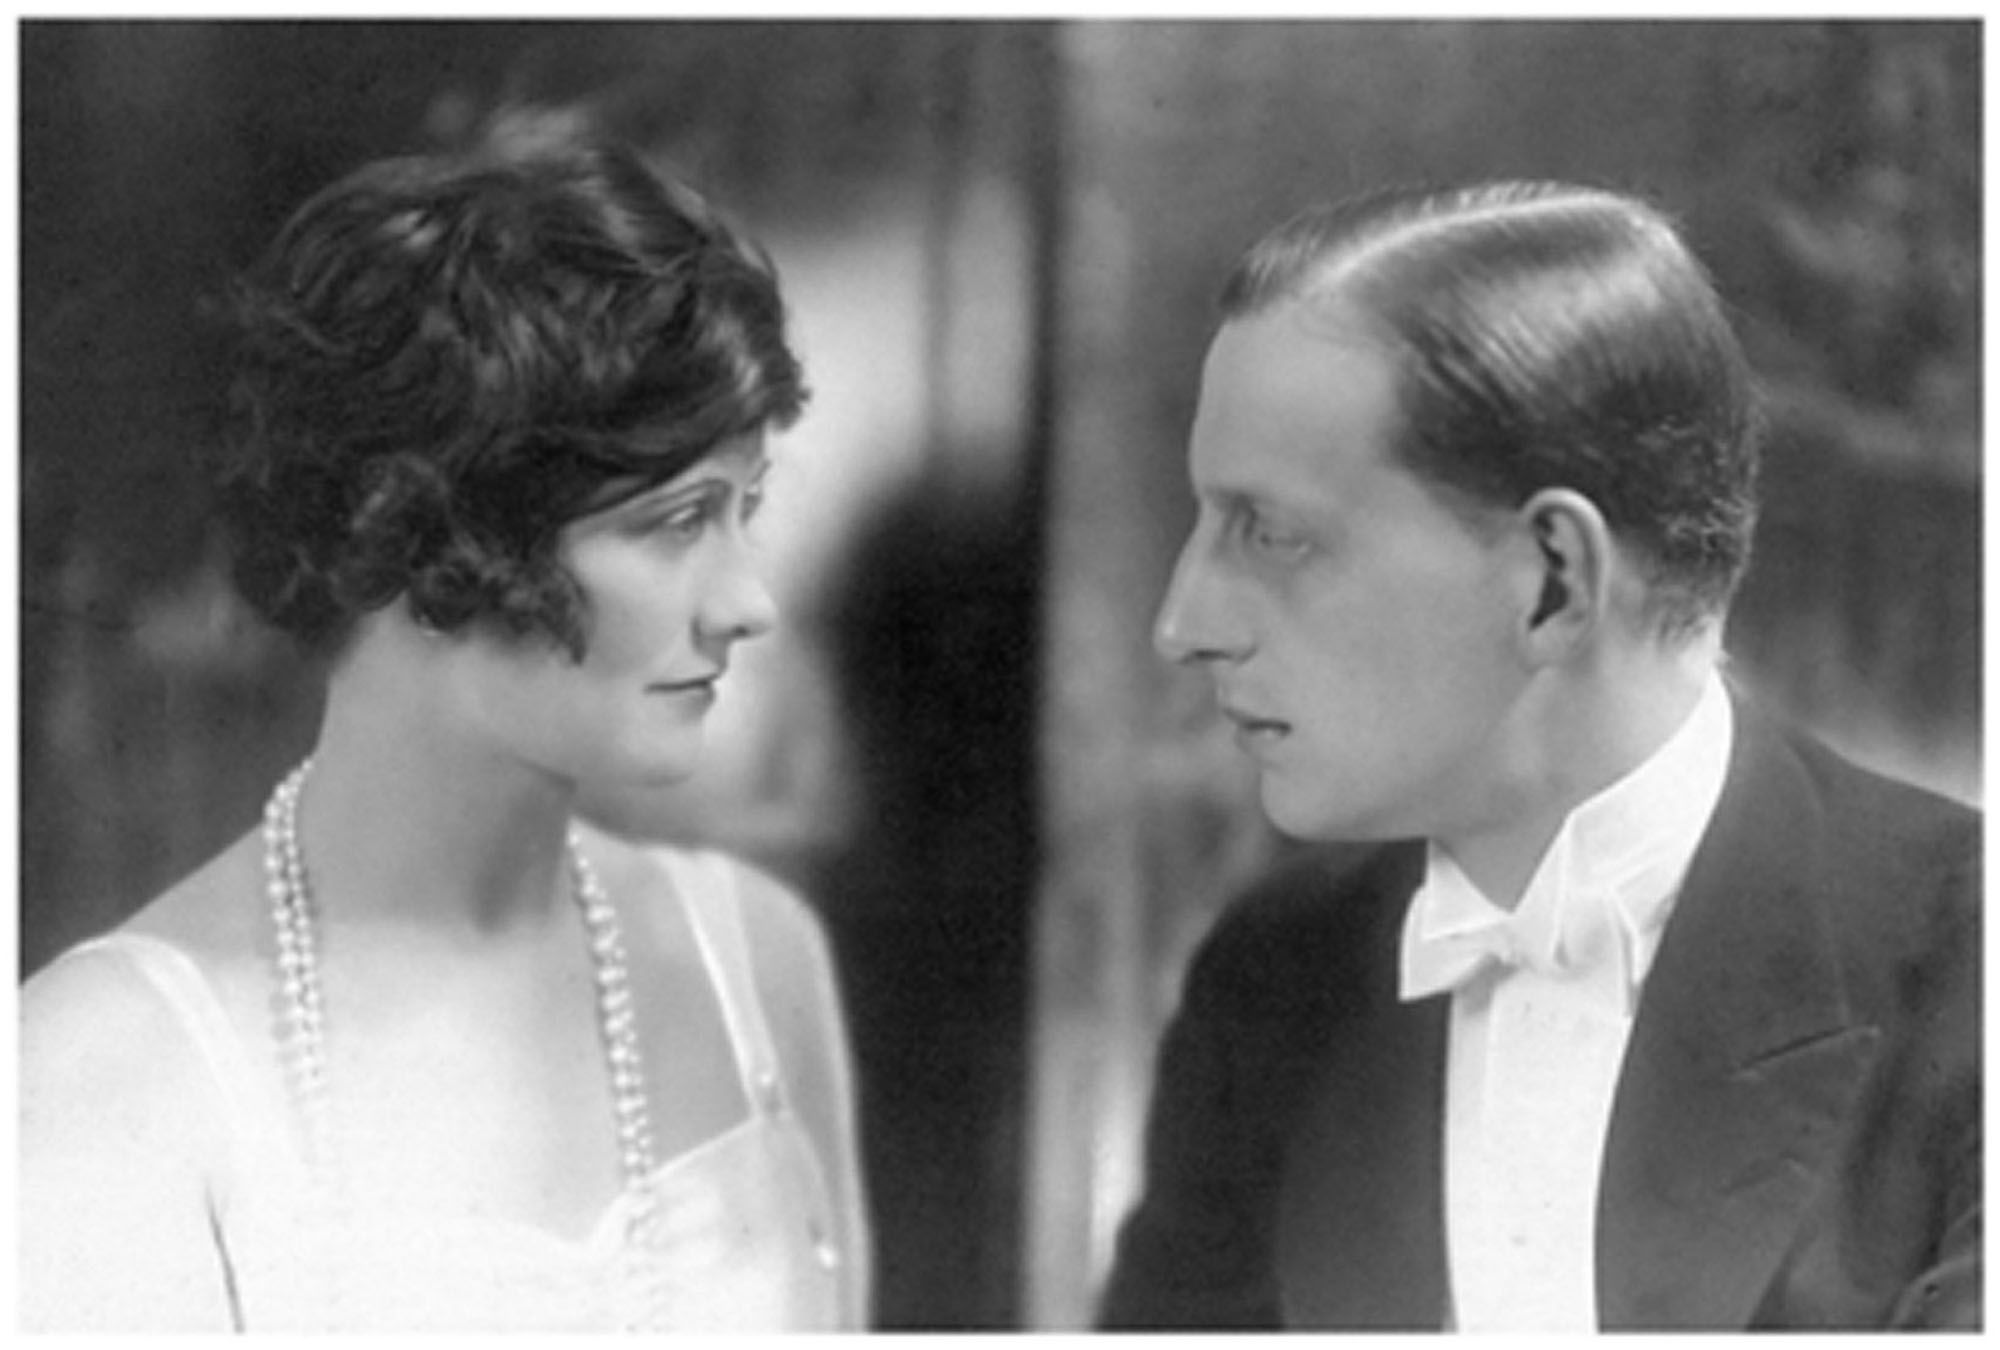 Gabrielle Chanel and the Grand Duke Dmitri Pavlovich, 1920 (Image: Collection Chanel)